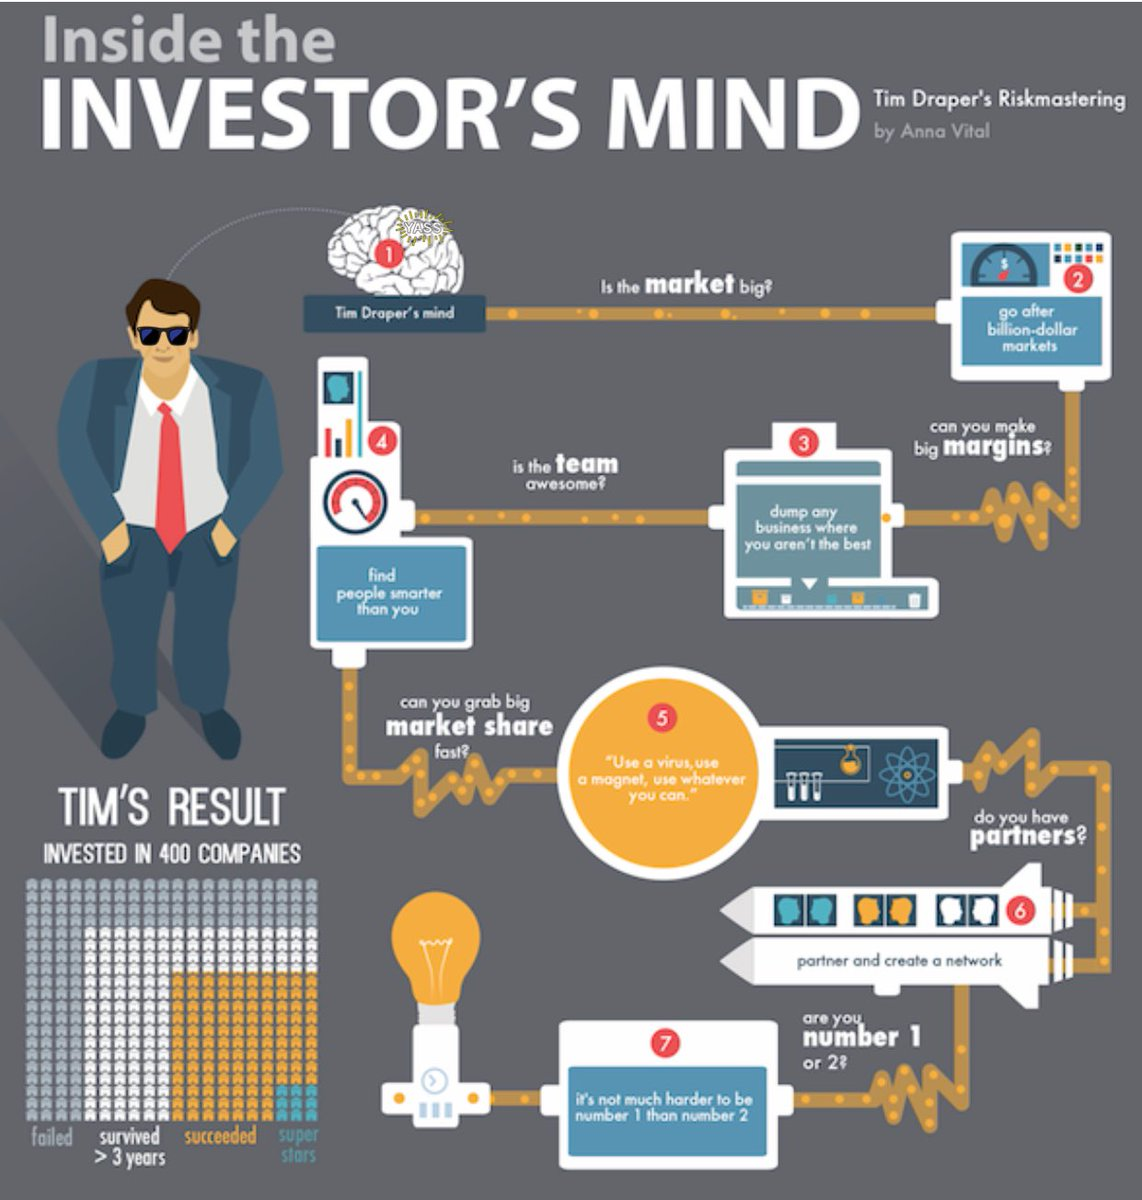 Do u wonder what #investors look 4 when talking 2 #startups &amp; #scaleups? I believe this #infographic gives a good #overview! #VentureCapital<br>http://pic.twitter.com/Il2YpHyqol